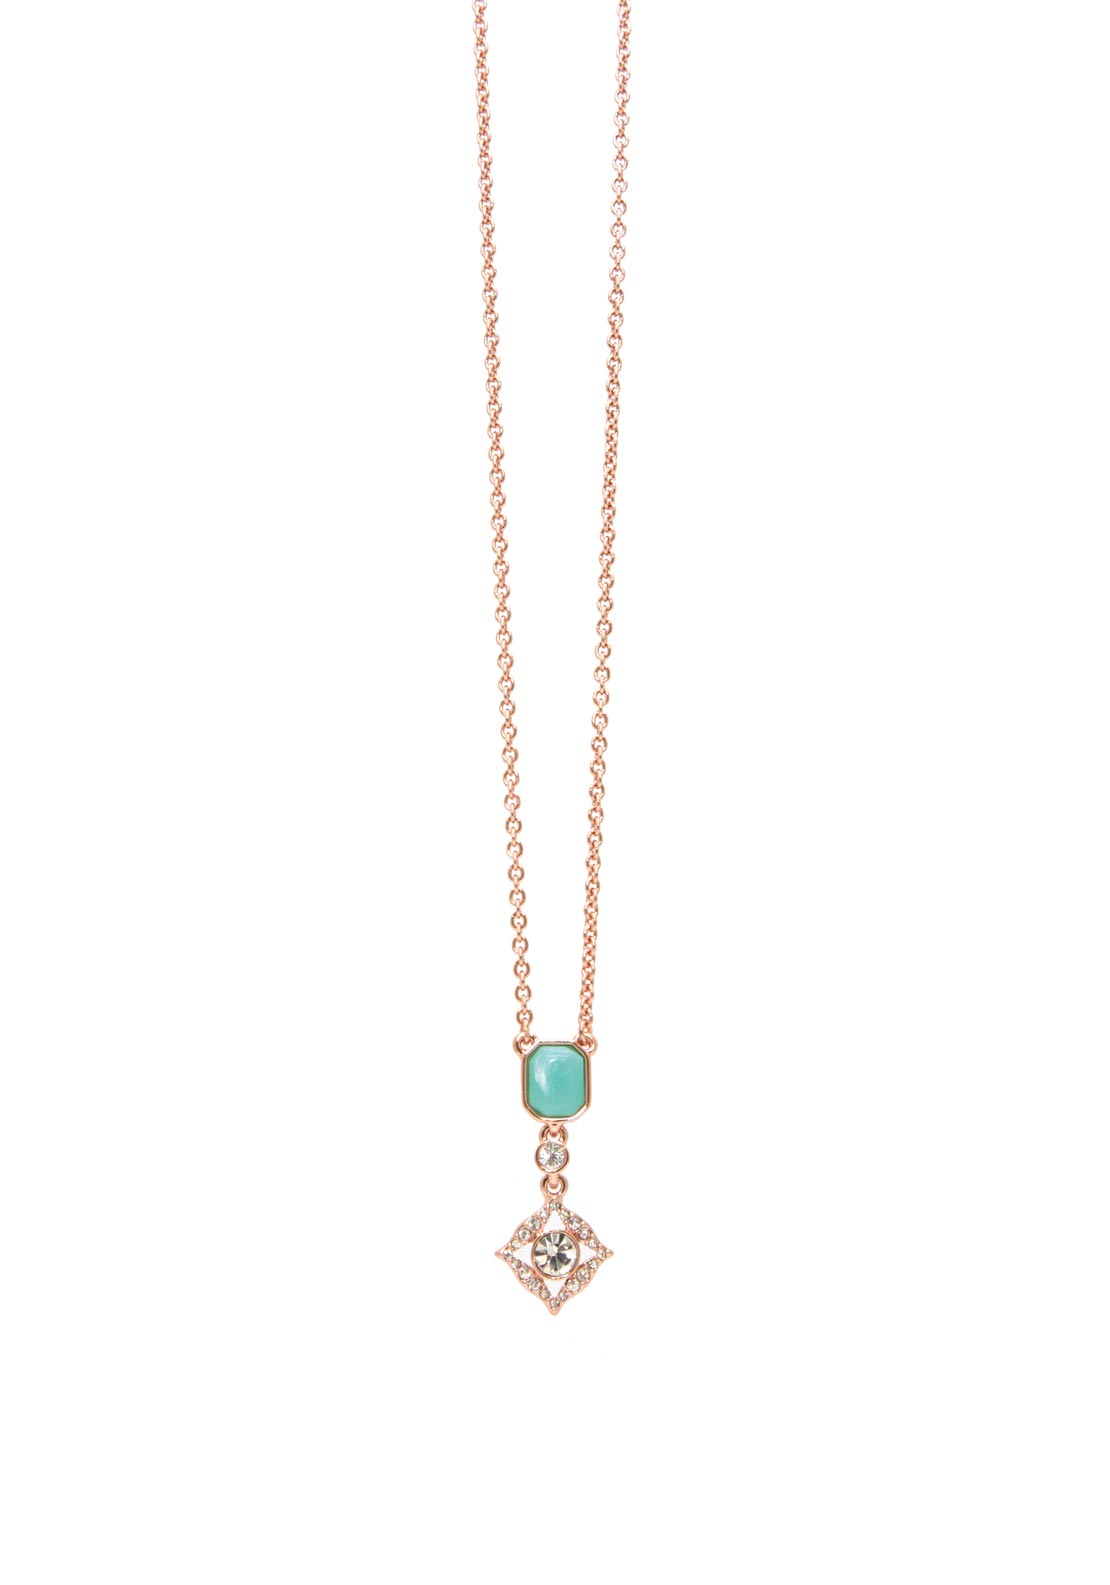 Absolute Charmed Chain Necklace, Rose Gold & Turquoise